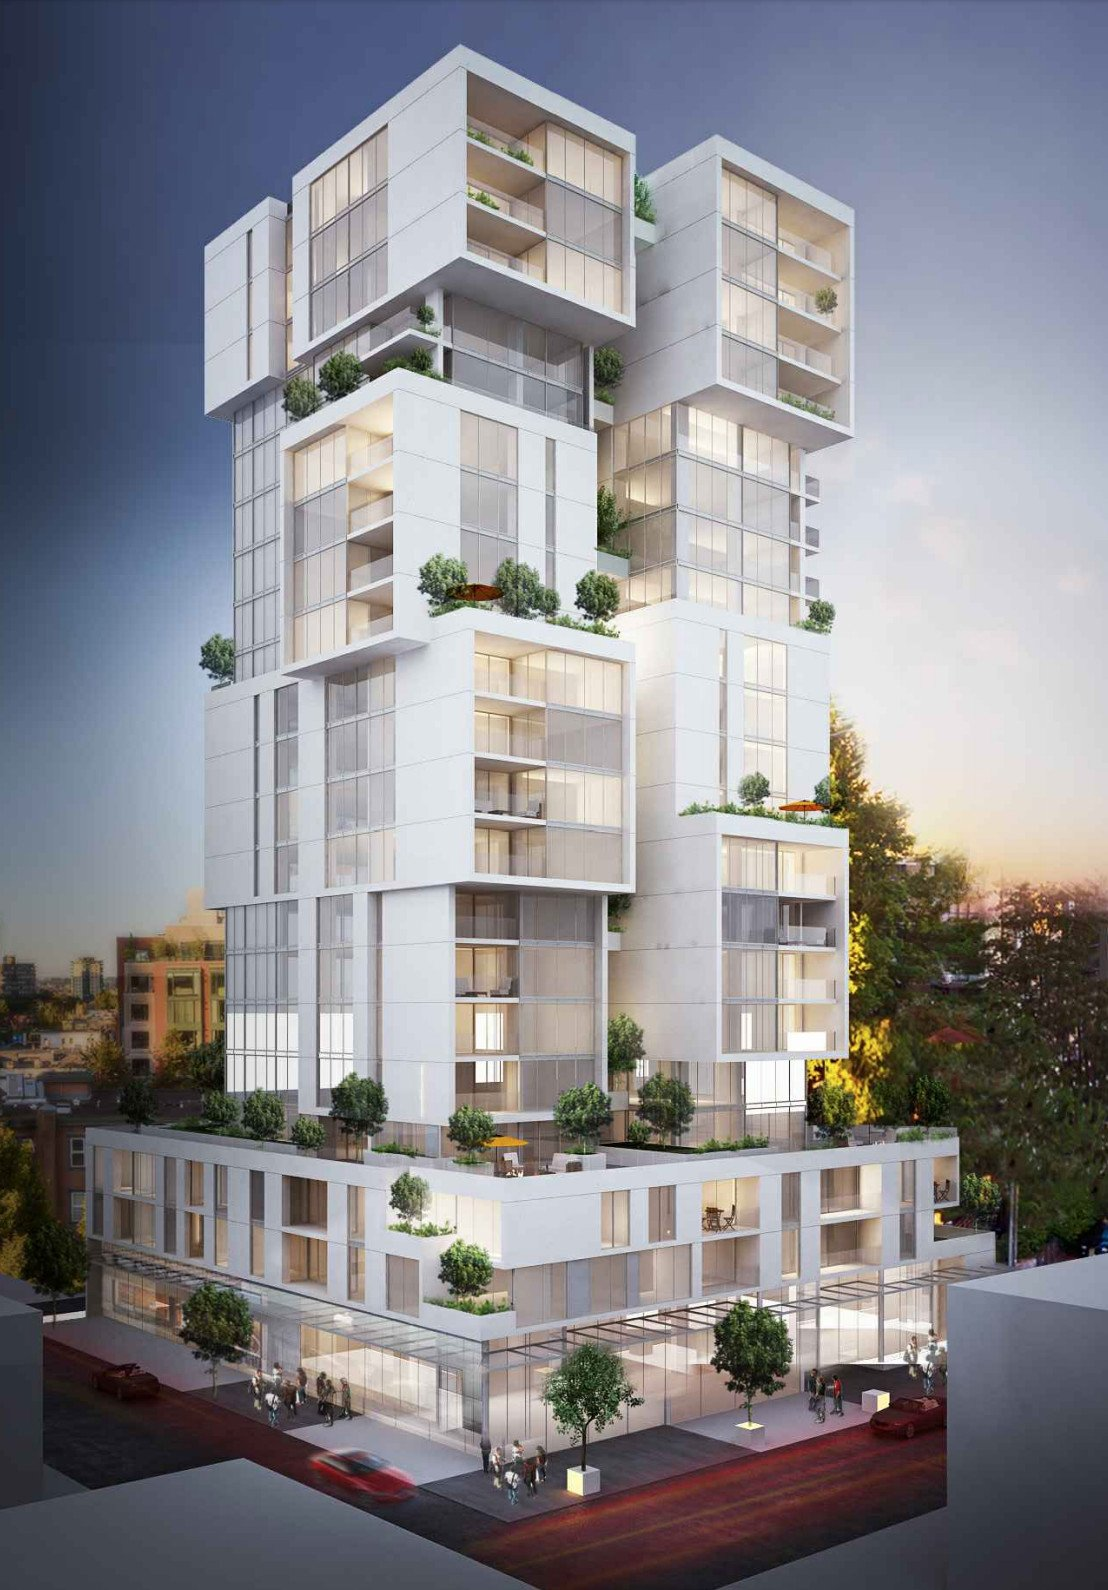 Landa Global to develop luxurious tower at 1810 Alberni Street